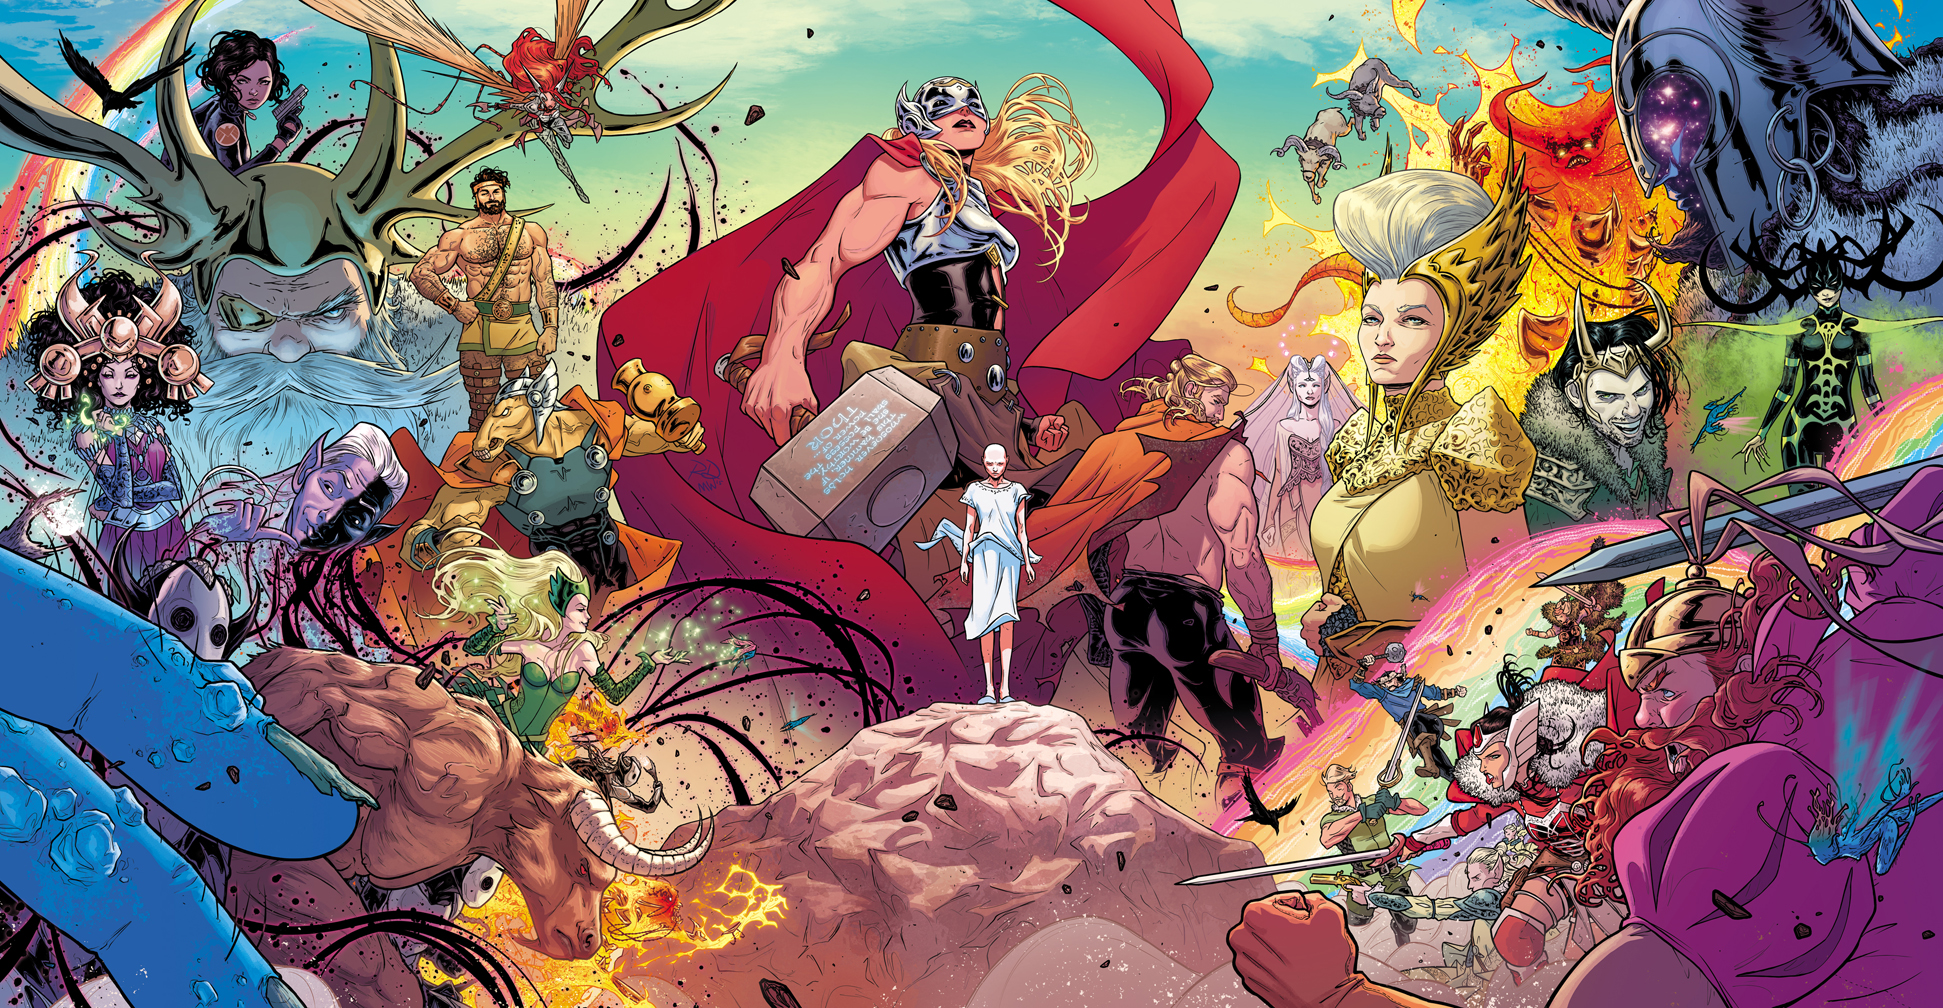 THE MIGHTY THOR #1 wraparound gatefold cover, with color by Matt Wilson. Marvel, 2015